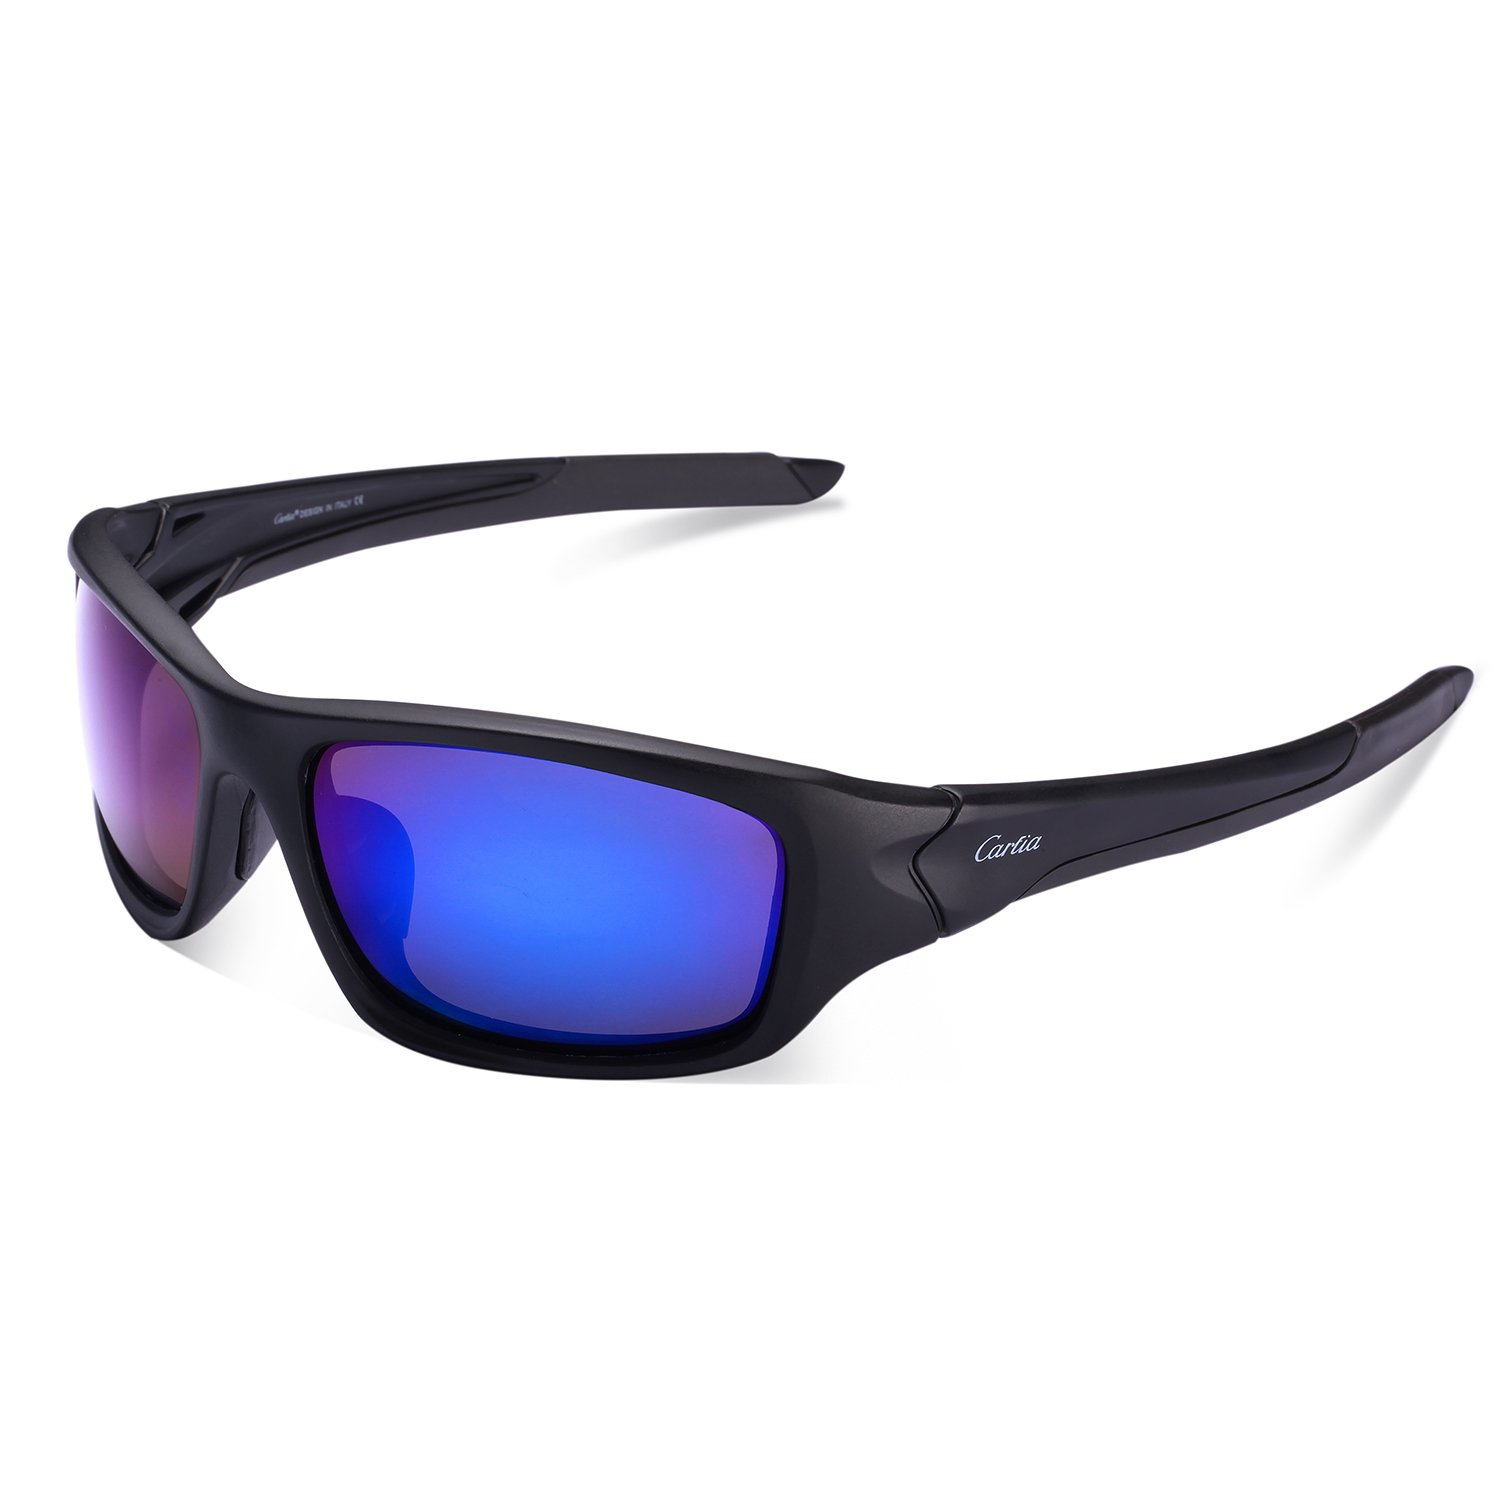 Sports Sunglasses - Carfia Cycling Running Fishing Sunglasses for Men by Carfia